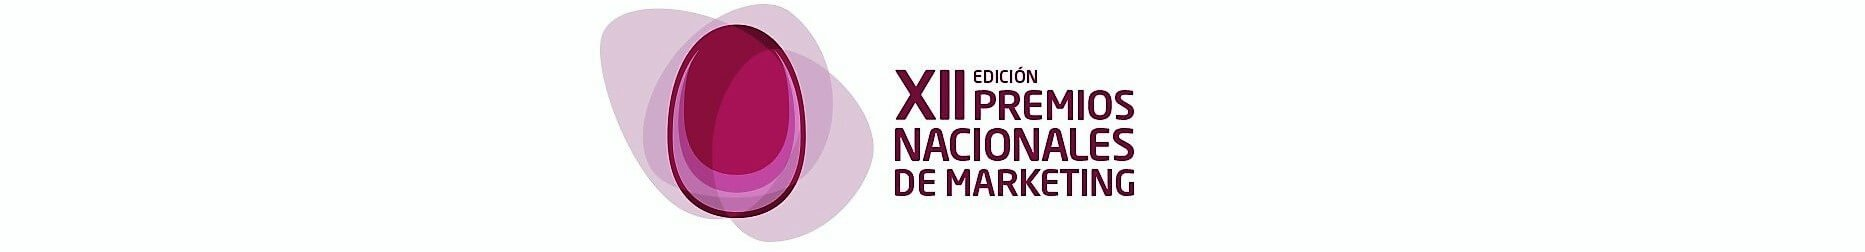 XII Premios Nacionales de Marketing-Logo